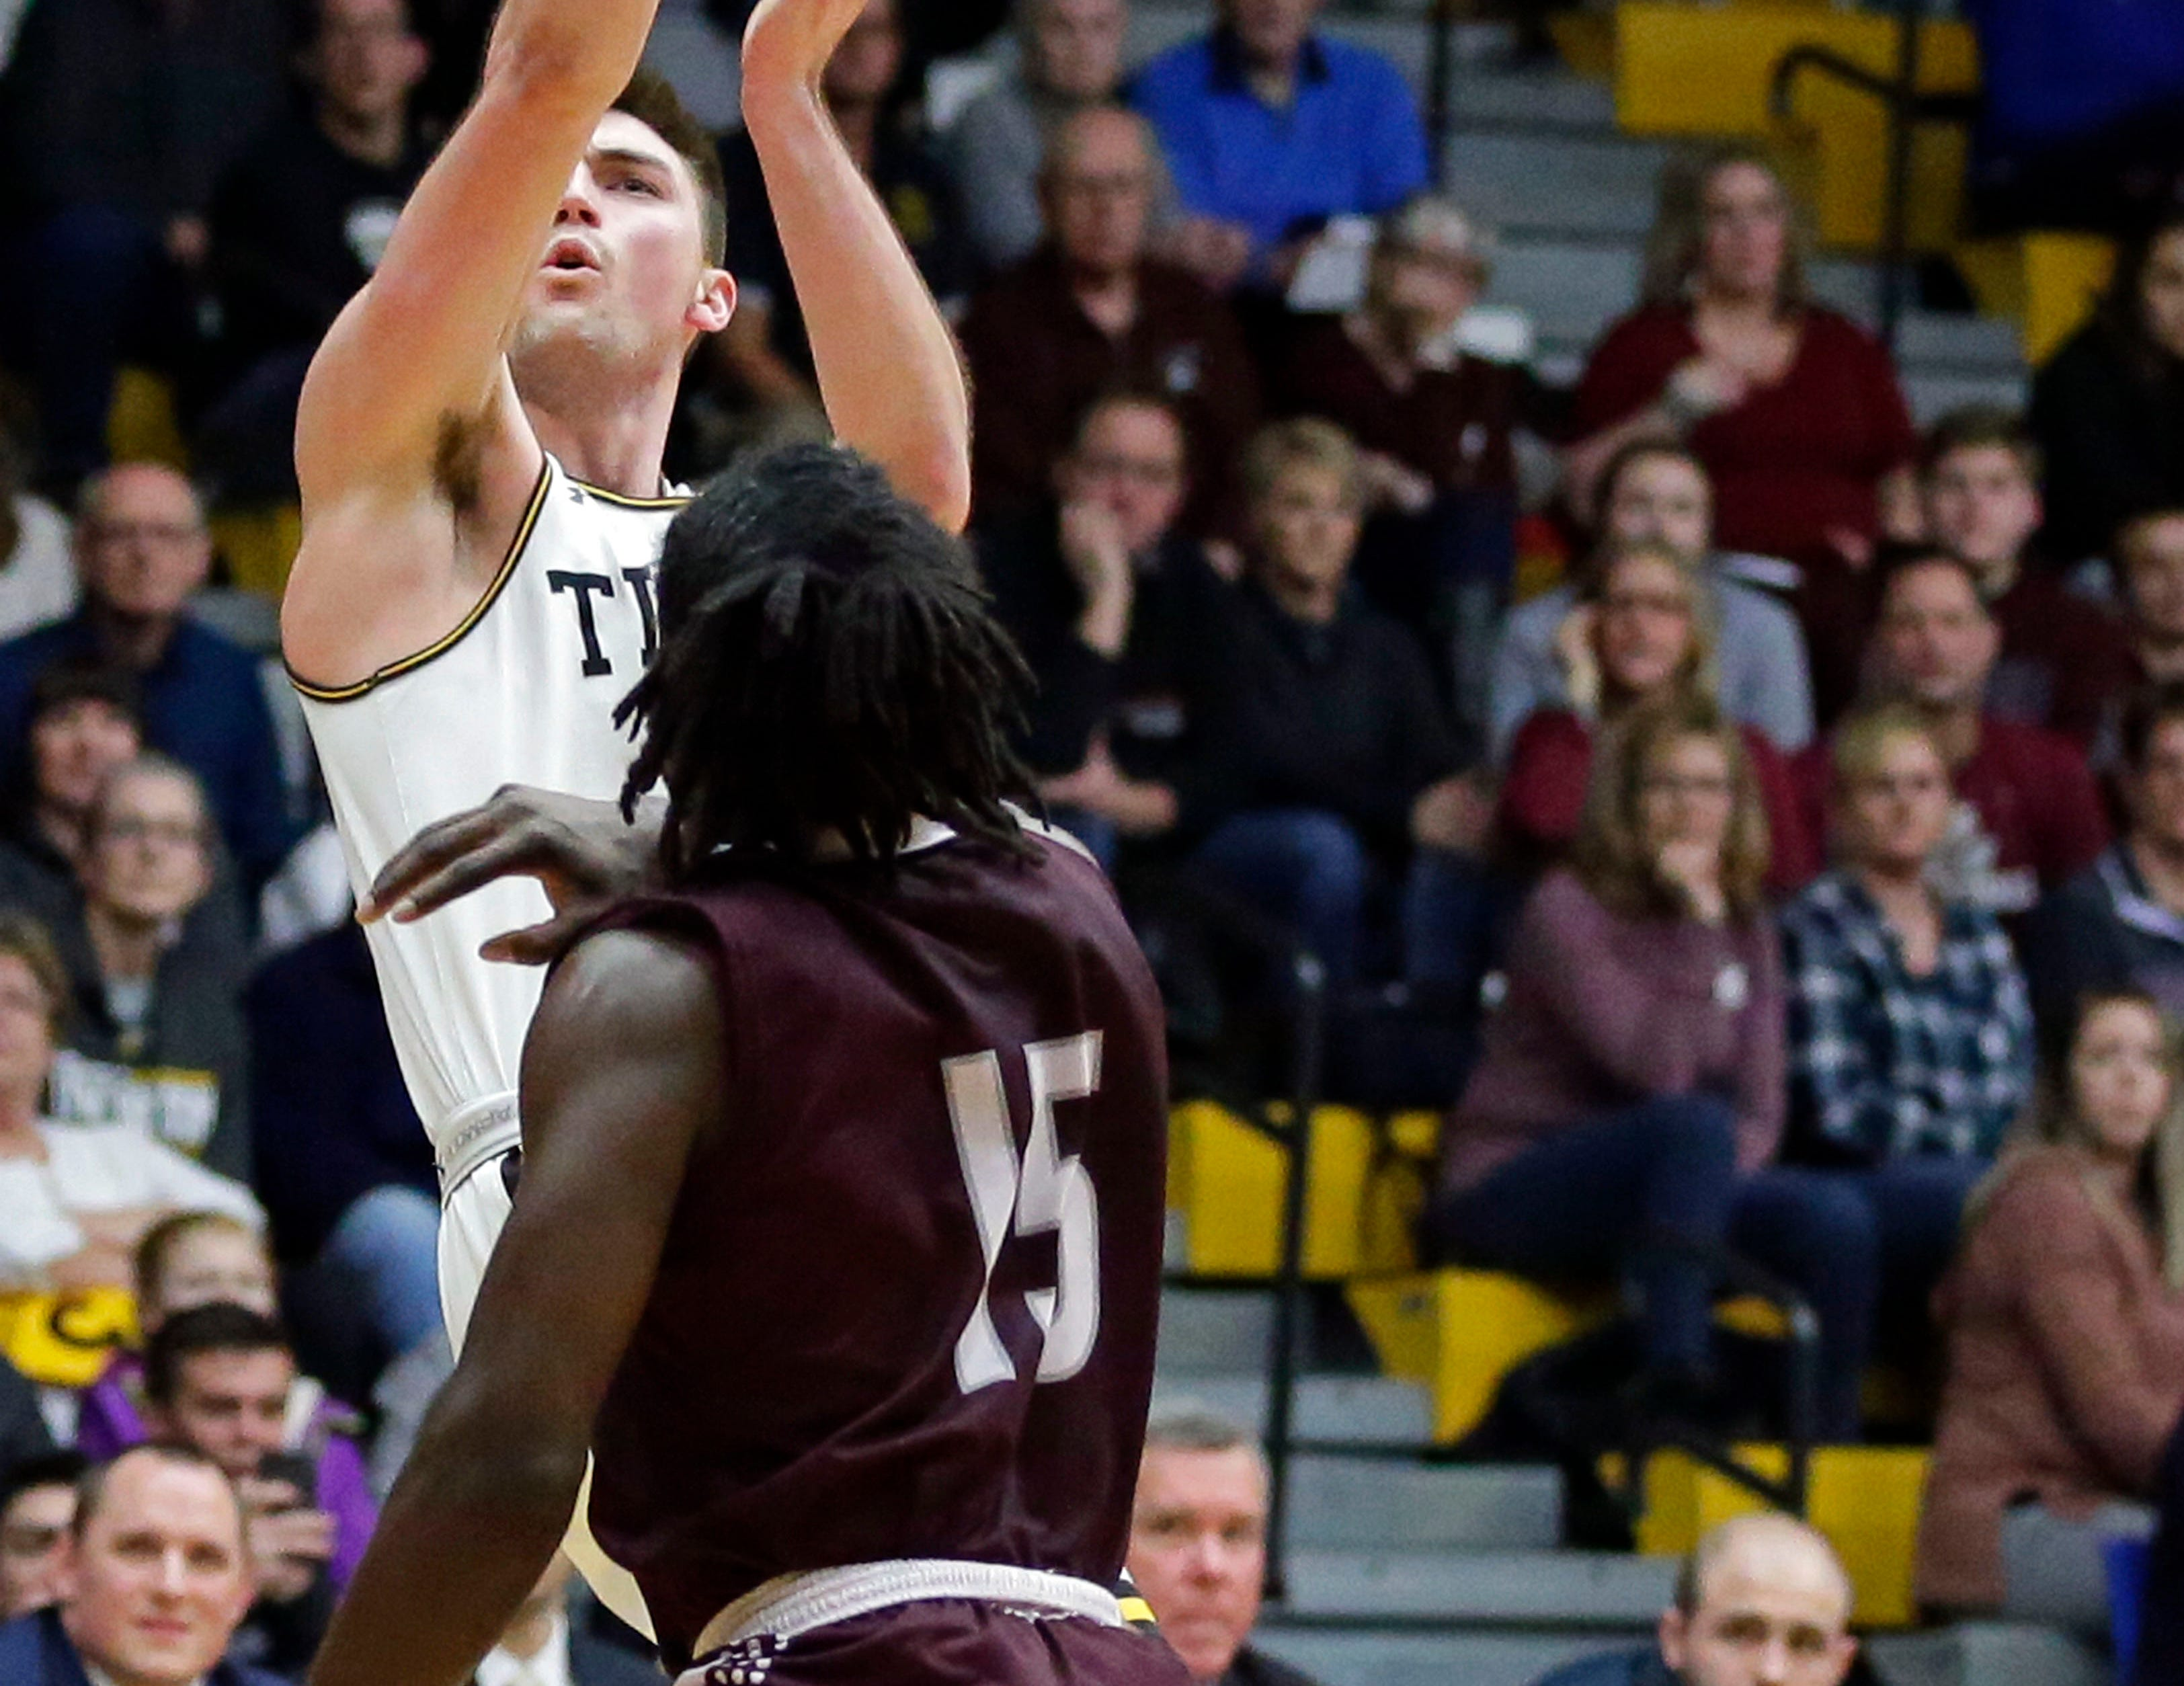 Brett Wittchow of UW-Oshkosh shoots over Taulvish McCray of UW-La Crosse in Wisconsin Intercollegiate Athletic Conference basketball Saturday, January 19, 2019, at Kolf Sports Center in Oshkosh, Wis. 